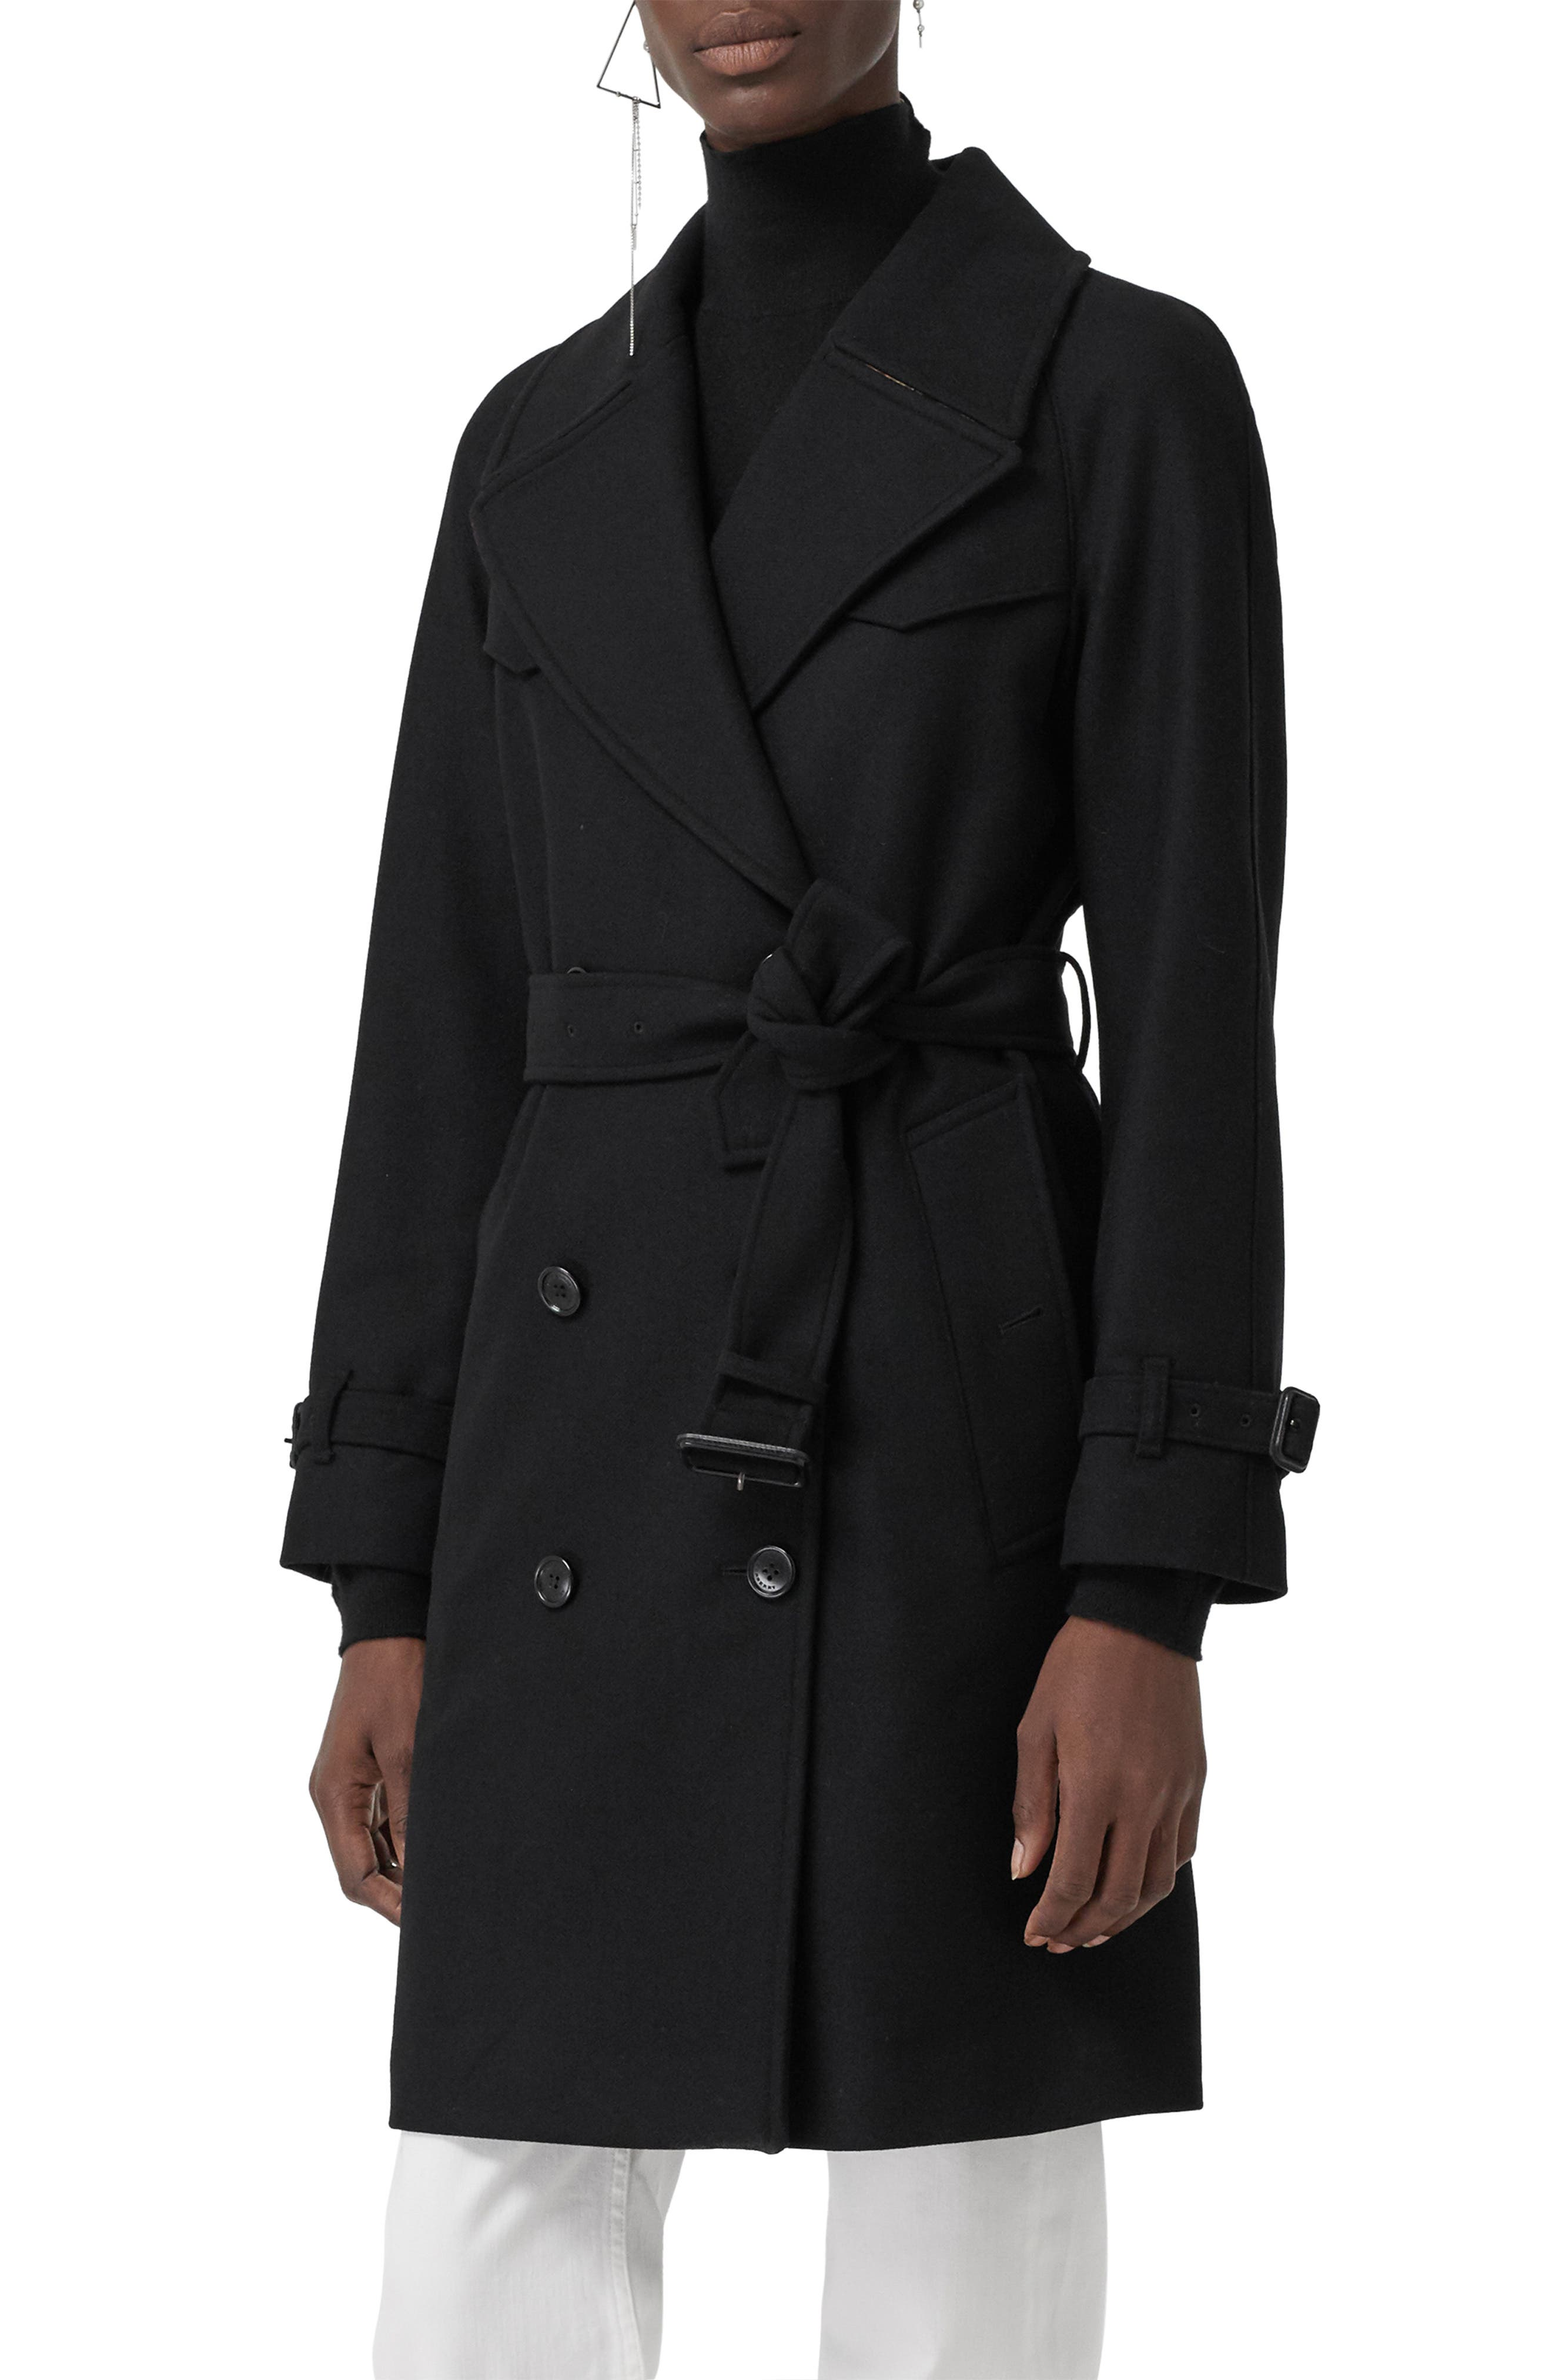 BURBERRY,                             Cranston Wool Blend Trench Coat,                             Main thumbnail 1, color,                             001